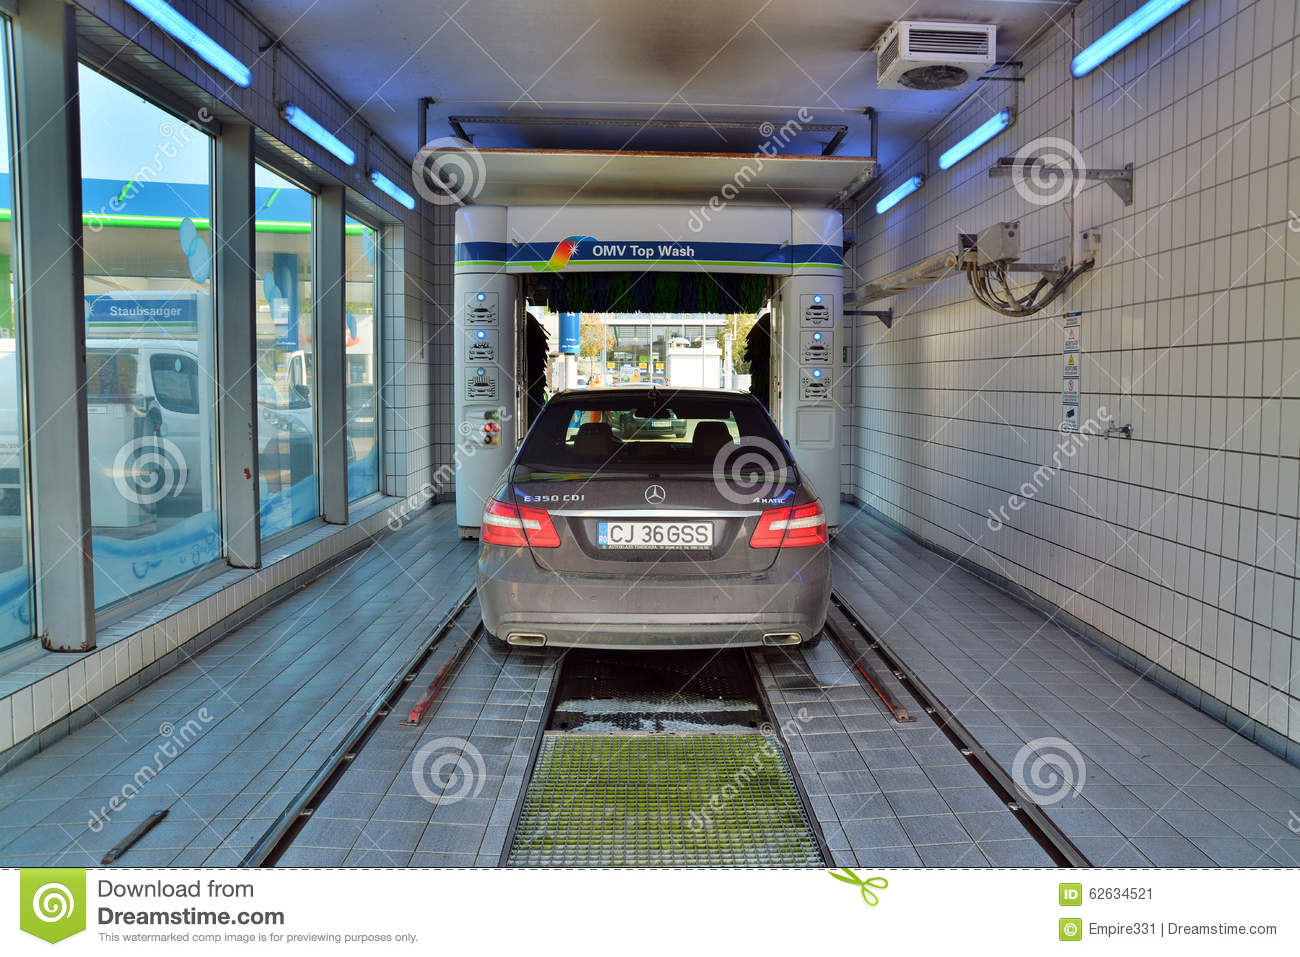 Editorial Photo Car Wash Vienna Austria October Mercedes Omv Gas Station Shot Taken October Th Image62634521 on commercial pressure washing